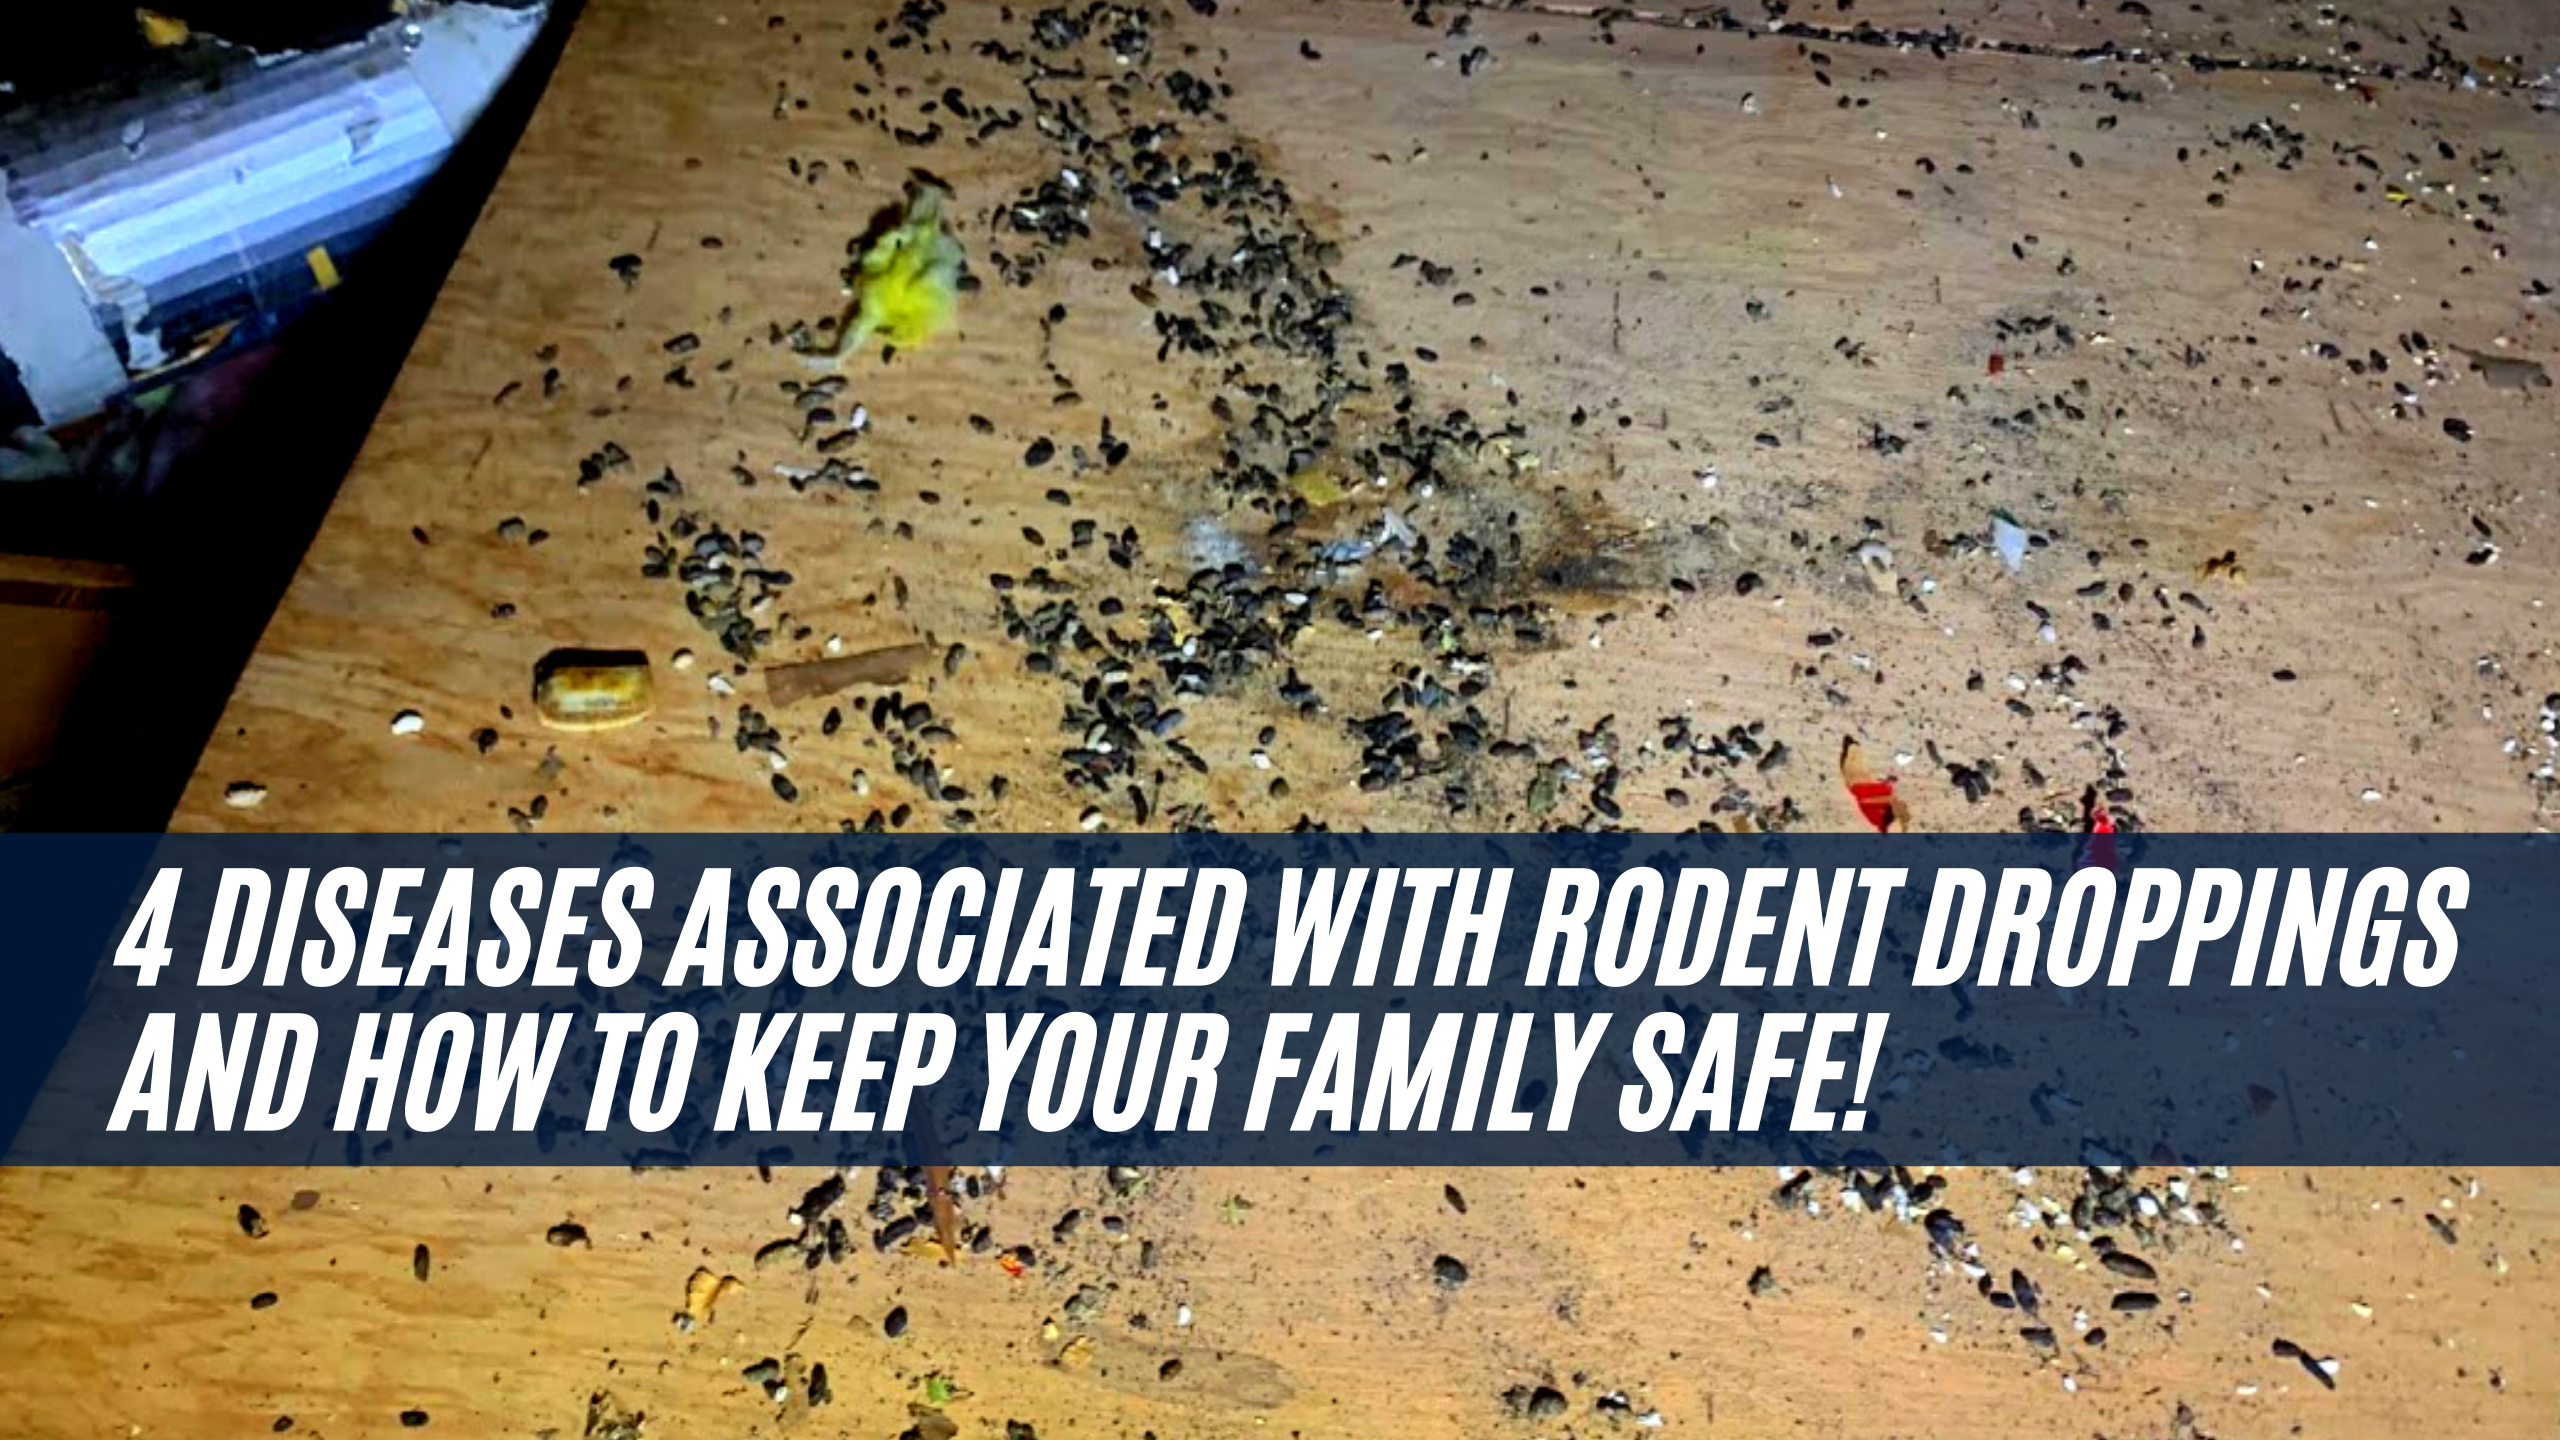 4 Diseases associated with rodent droppings and how to keep your family safe!